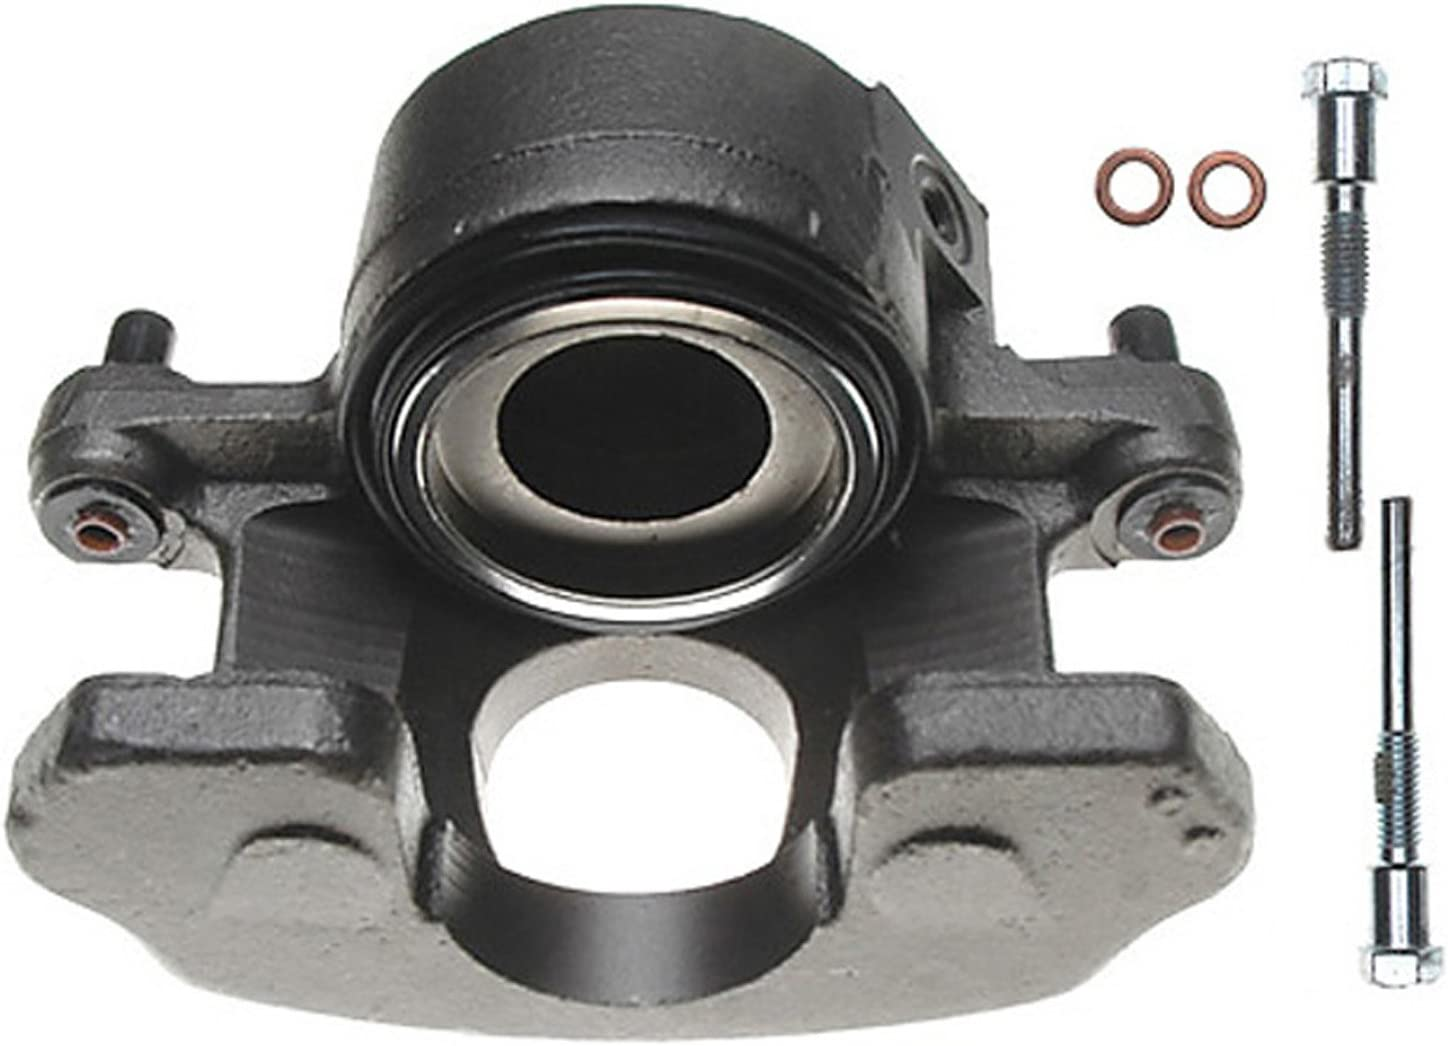 Remanufactured Friction Ready Non-Coated ACDelco 18FR988 Professional Front Driver Side Disc Brake Caliper Assembly without Pads